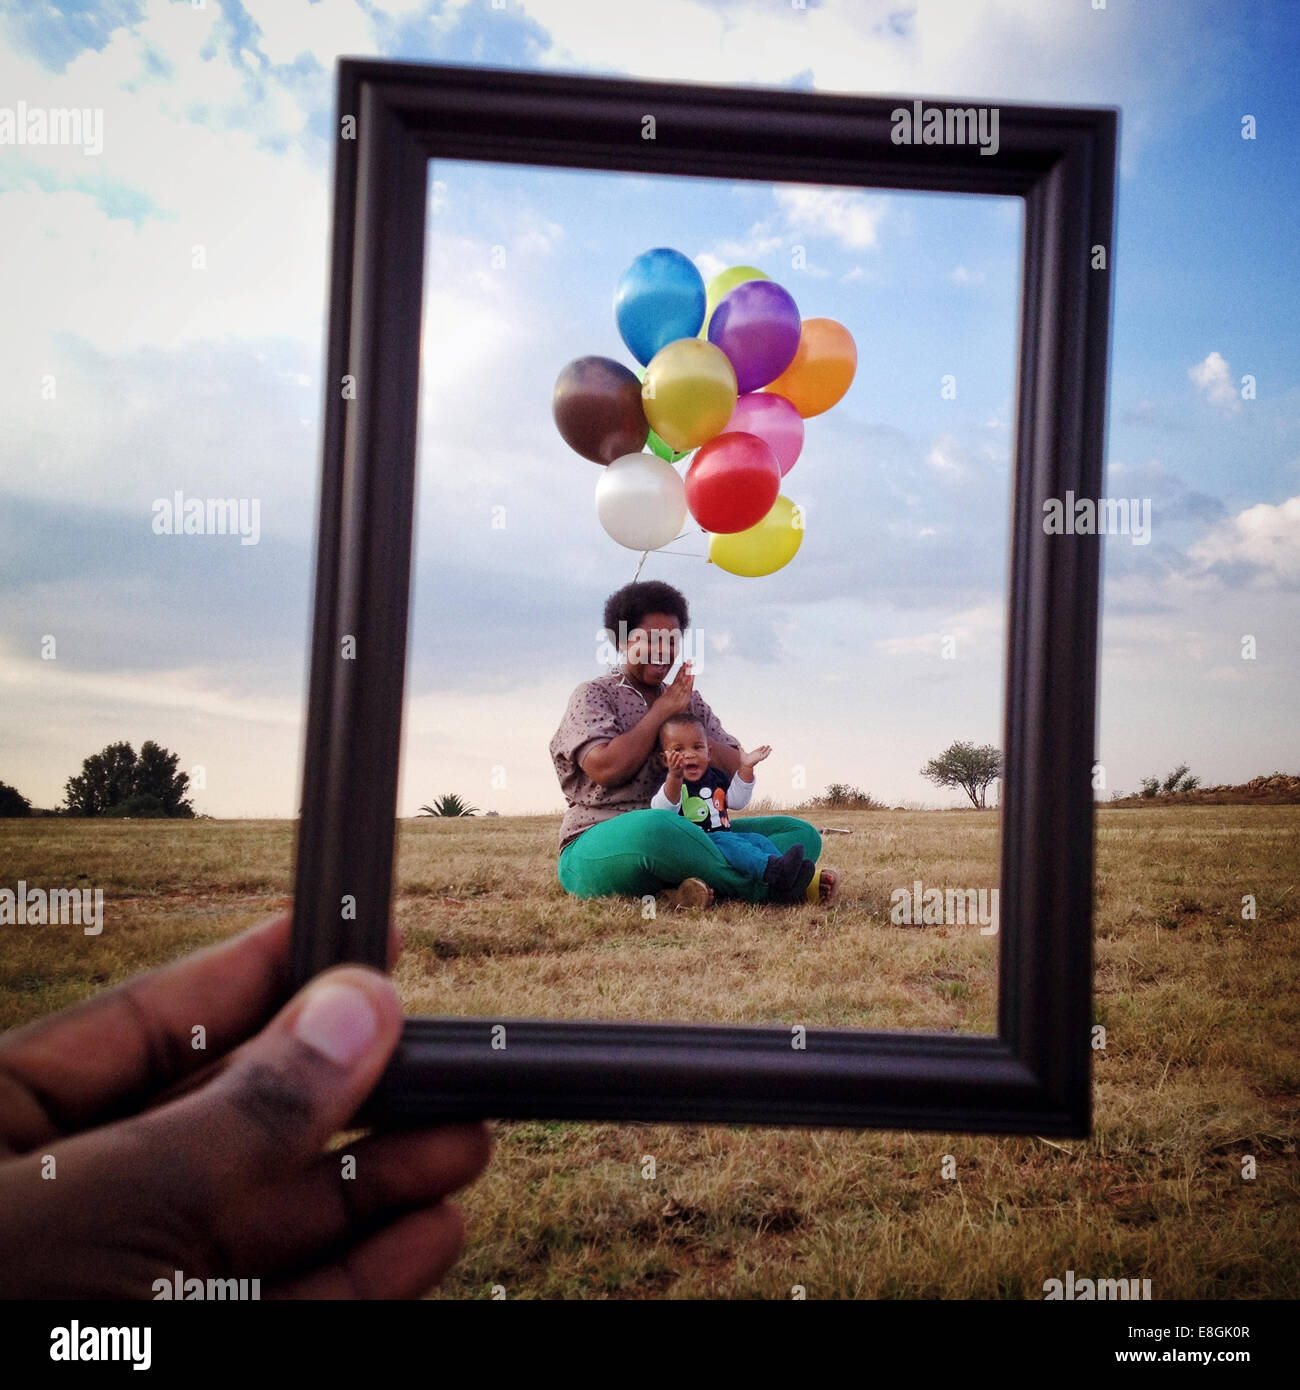 Man holding a Picture frame in front of a Mother and son in a meadow, Roodeport, Johannesburg, Gauteng, South Africa Stock Photo